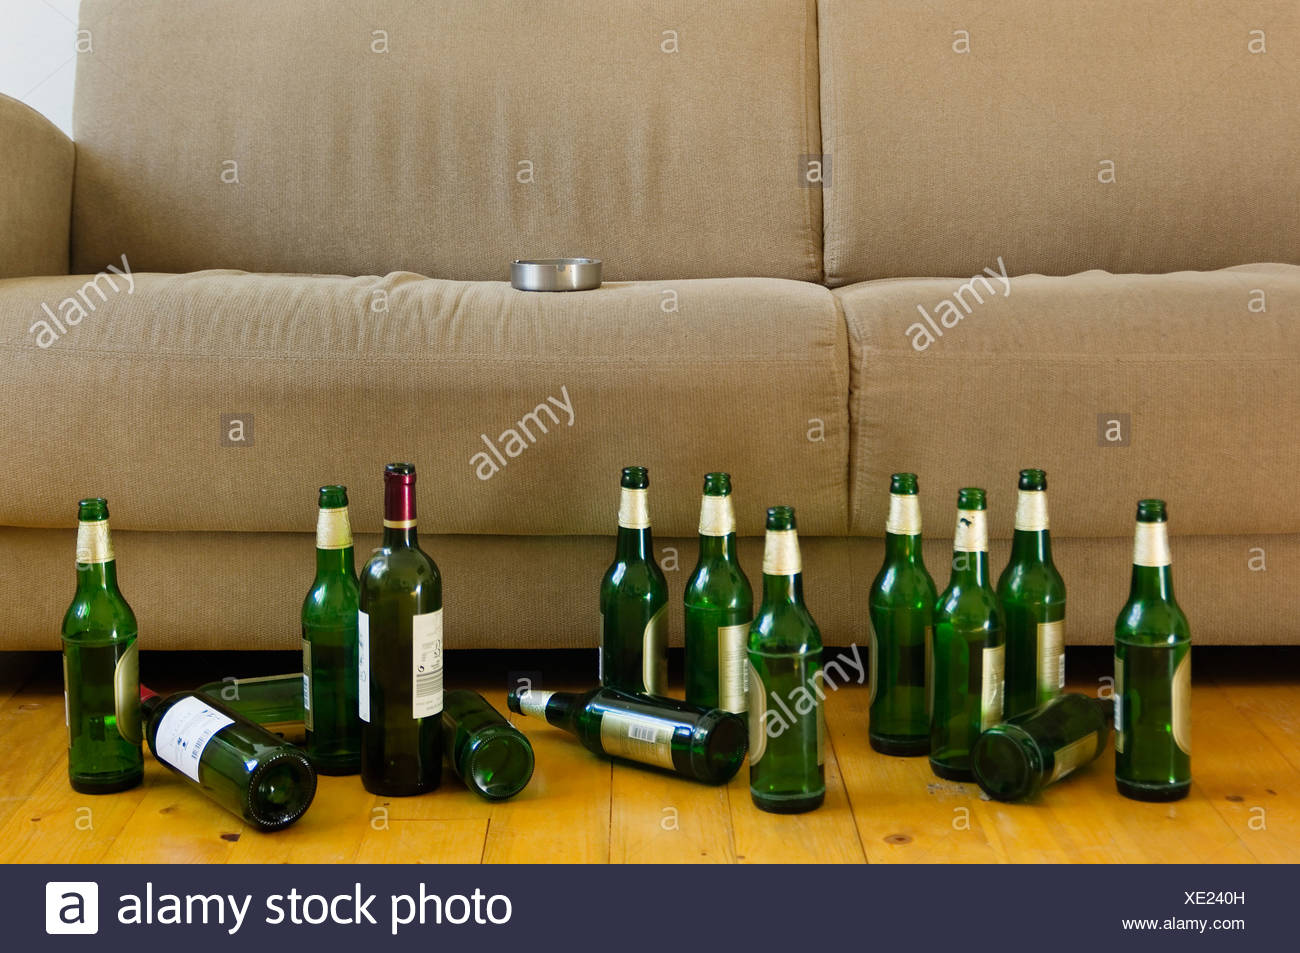 Sofa Frankfurt Germany Hessen Frankfurt Sofa With Empty Beer Bottles Stock